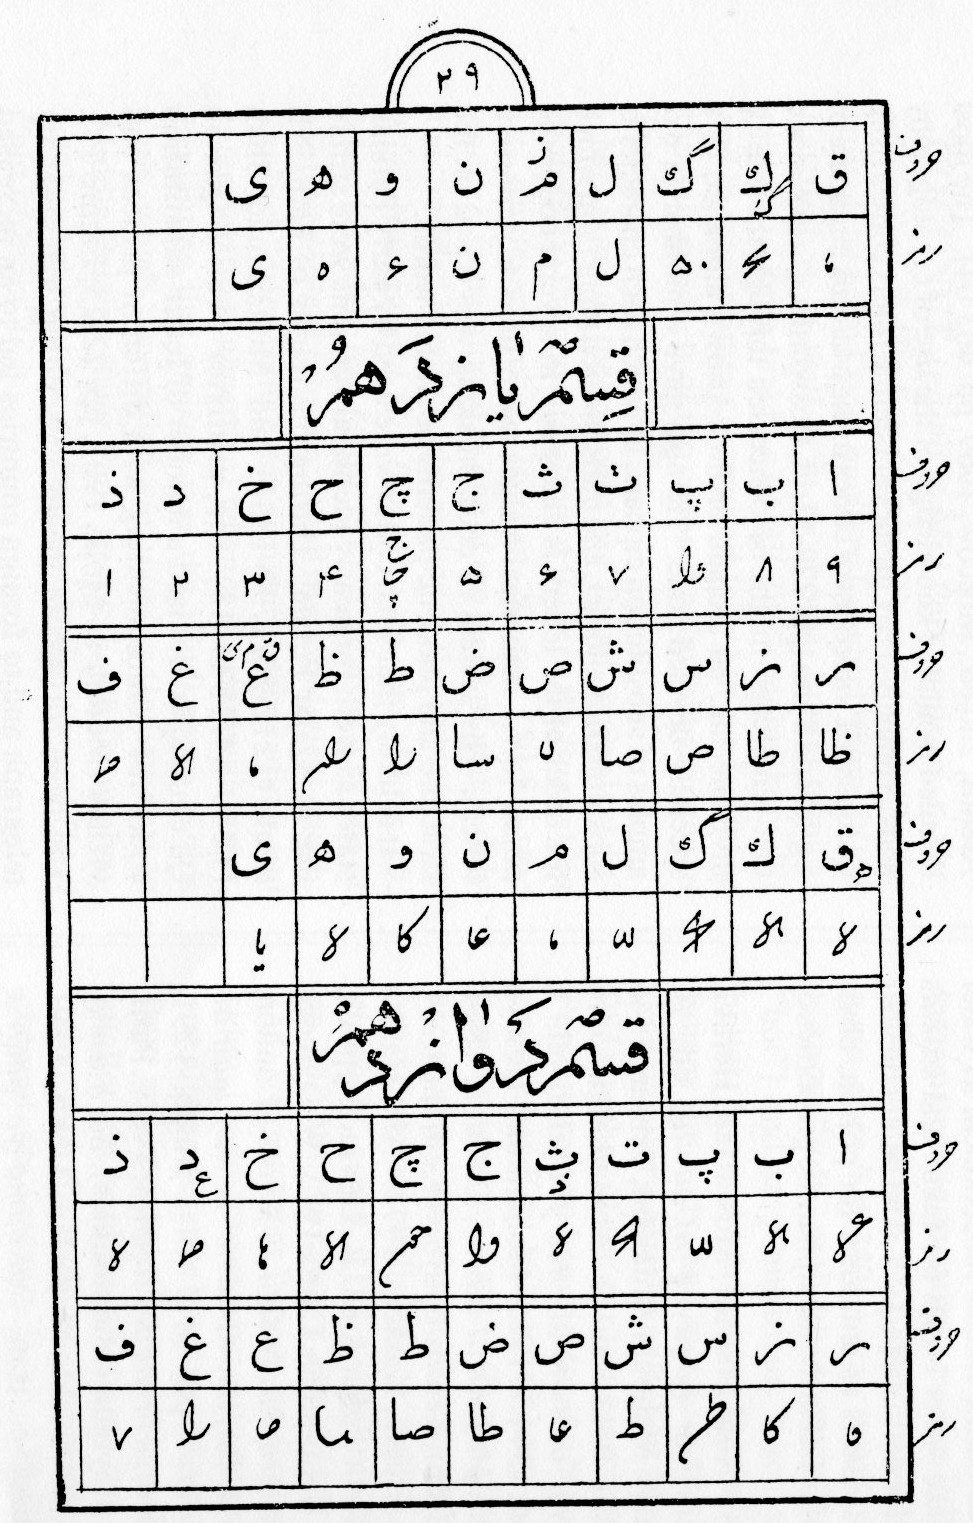 Code For Letters Of The Alphabet.Codes Encyclopaedia Iranica